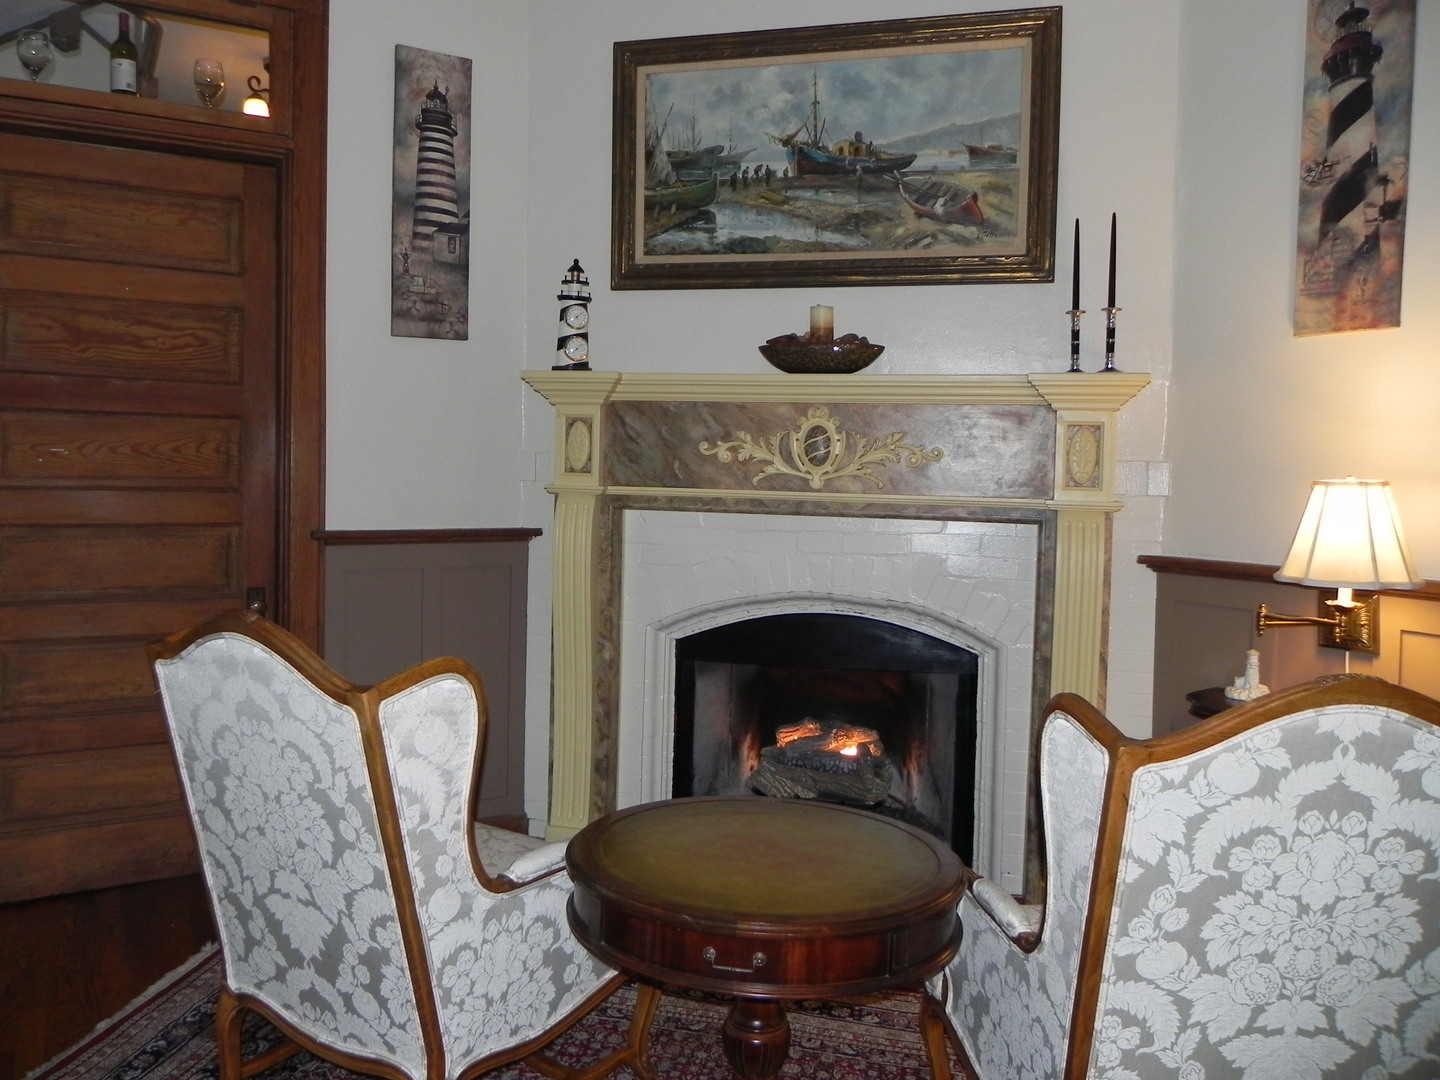 A fire place sitting in a living room filled with furniture and a fireplace at Vine Cottage Inn.